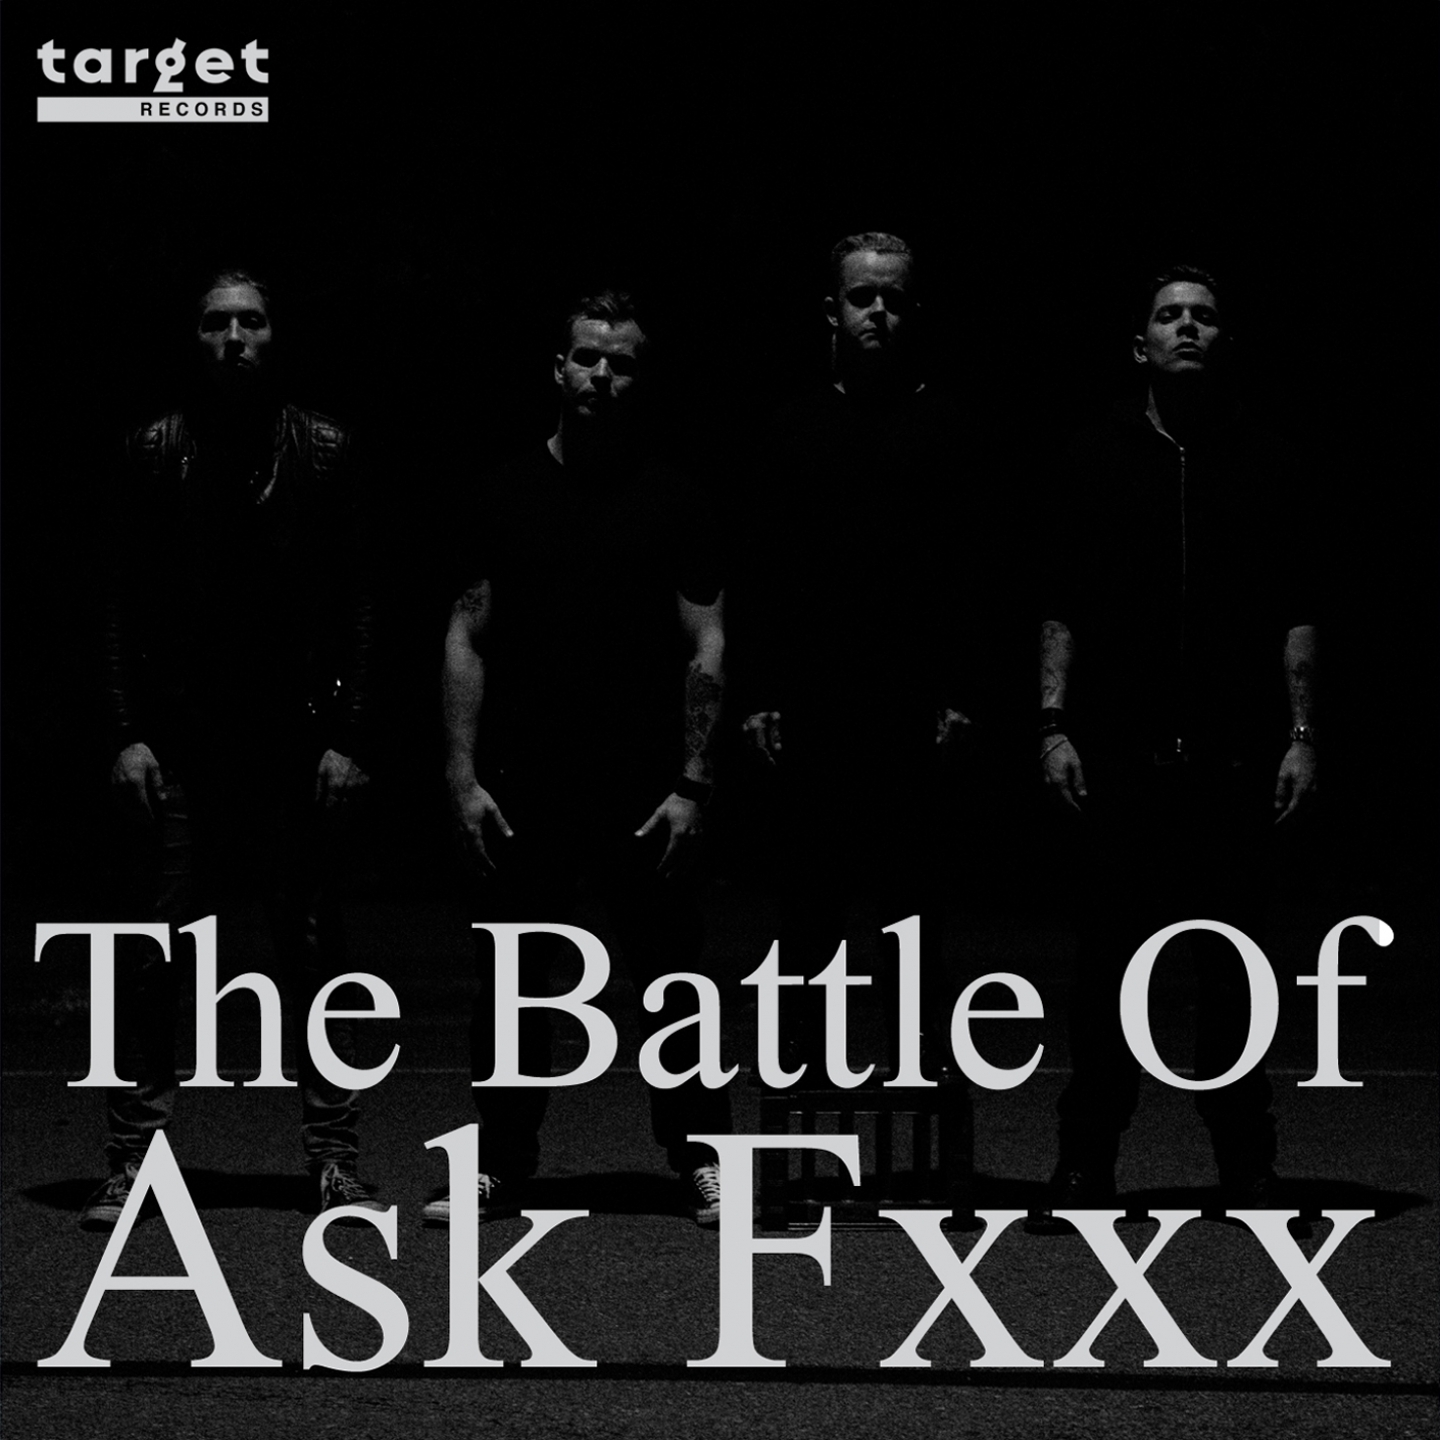 Rock Hard Power Spray – 'The Battle of Ask Fxxx' (Single)